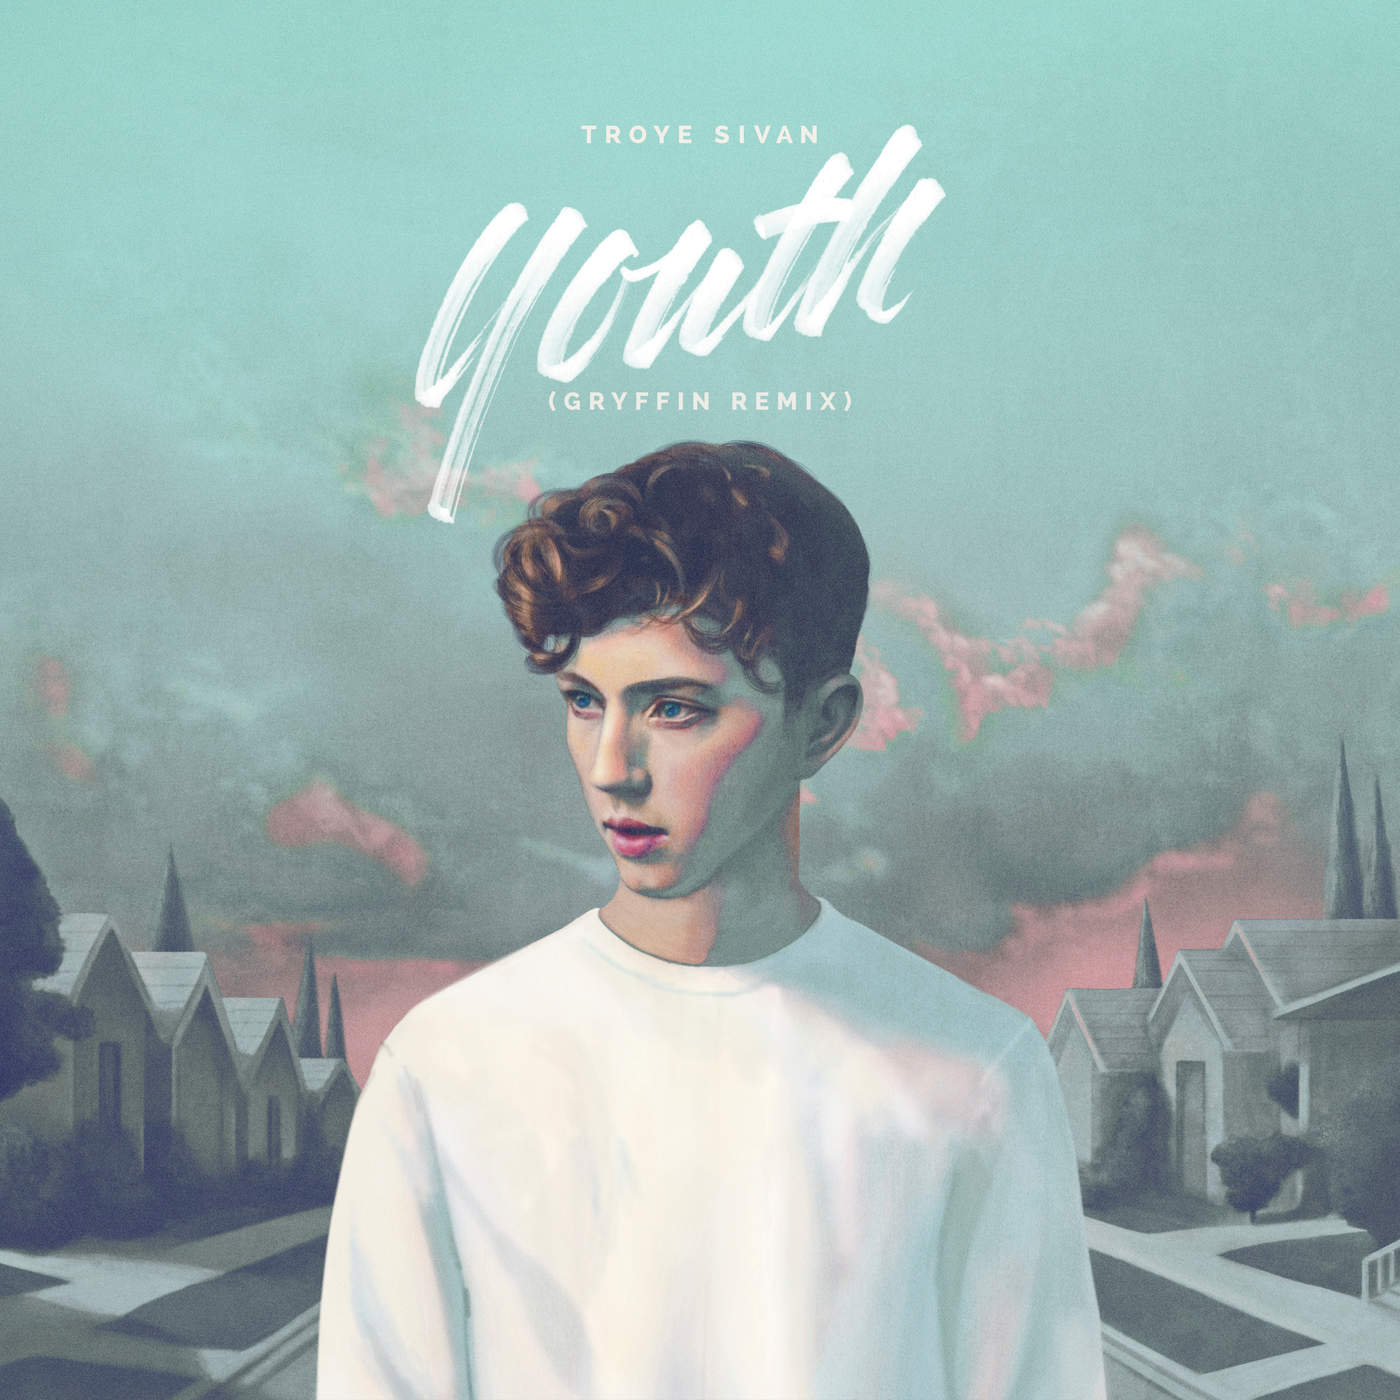 Troye Sivan - YOUTH (Gryffin Remix) - Single Cover